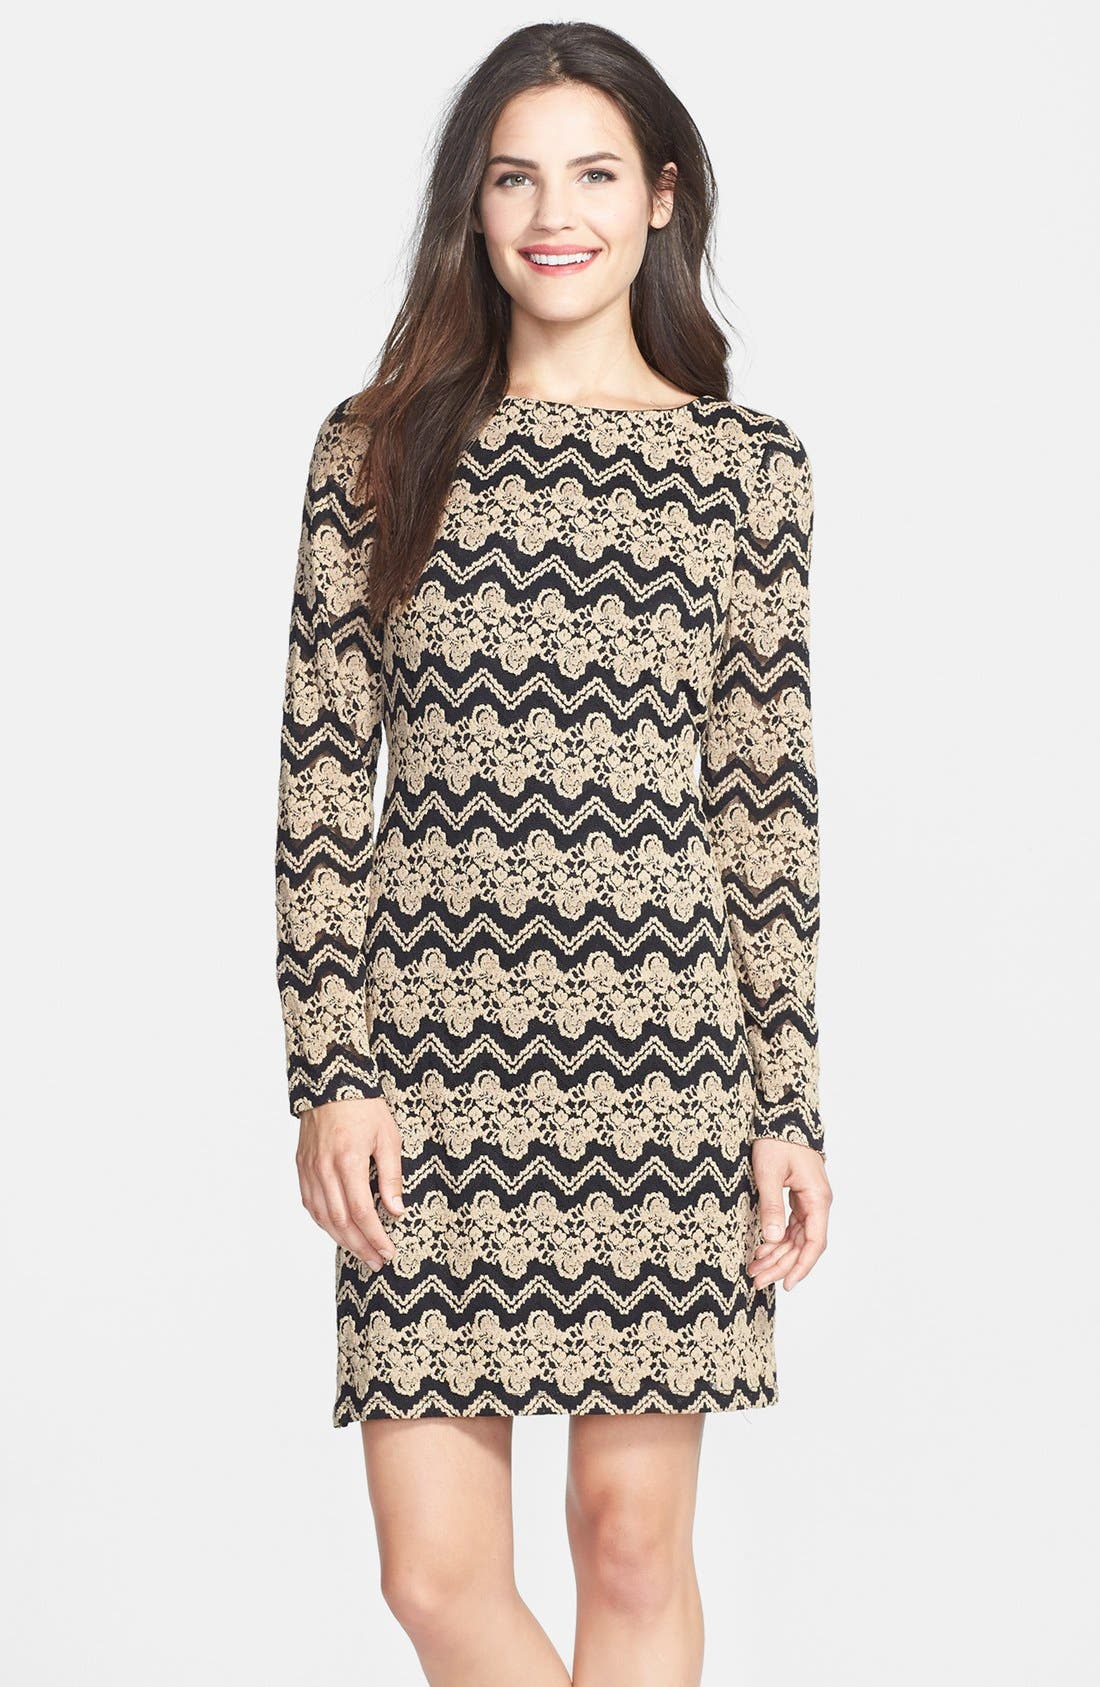 ELIZA J, Chevron Lace Shift Dress, Main thumbnail 1, color, 001